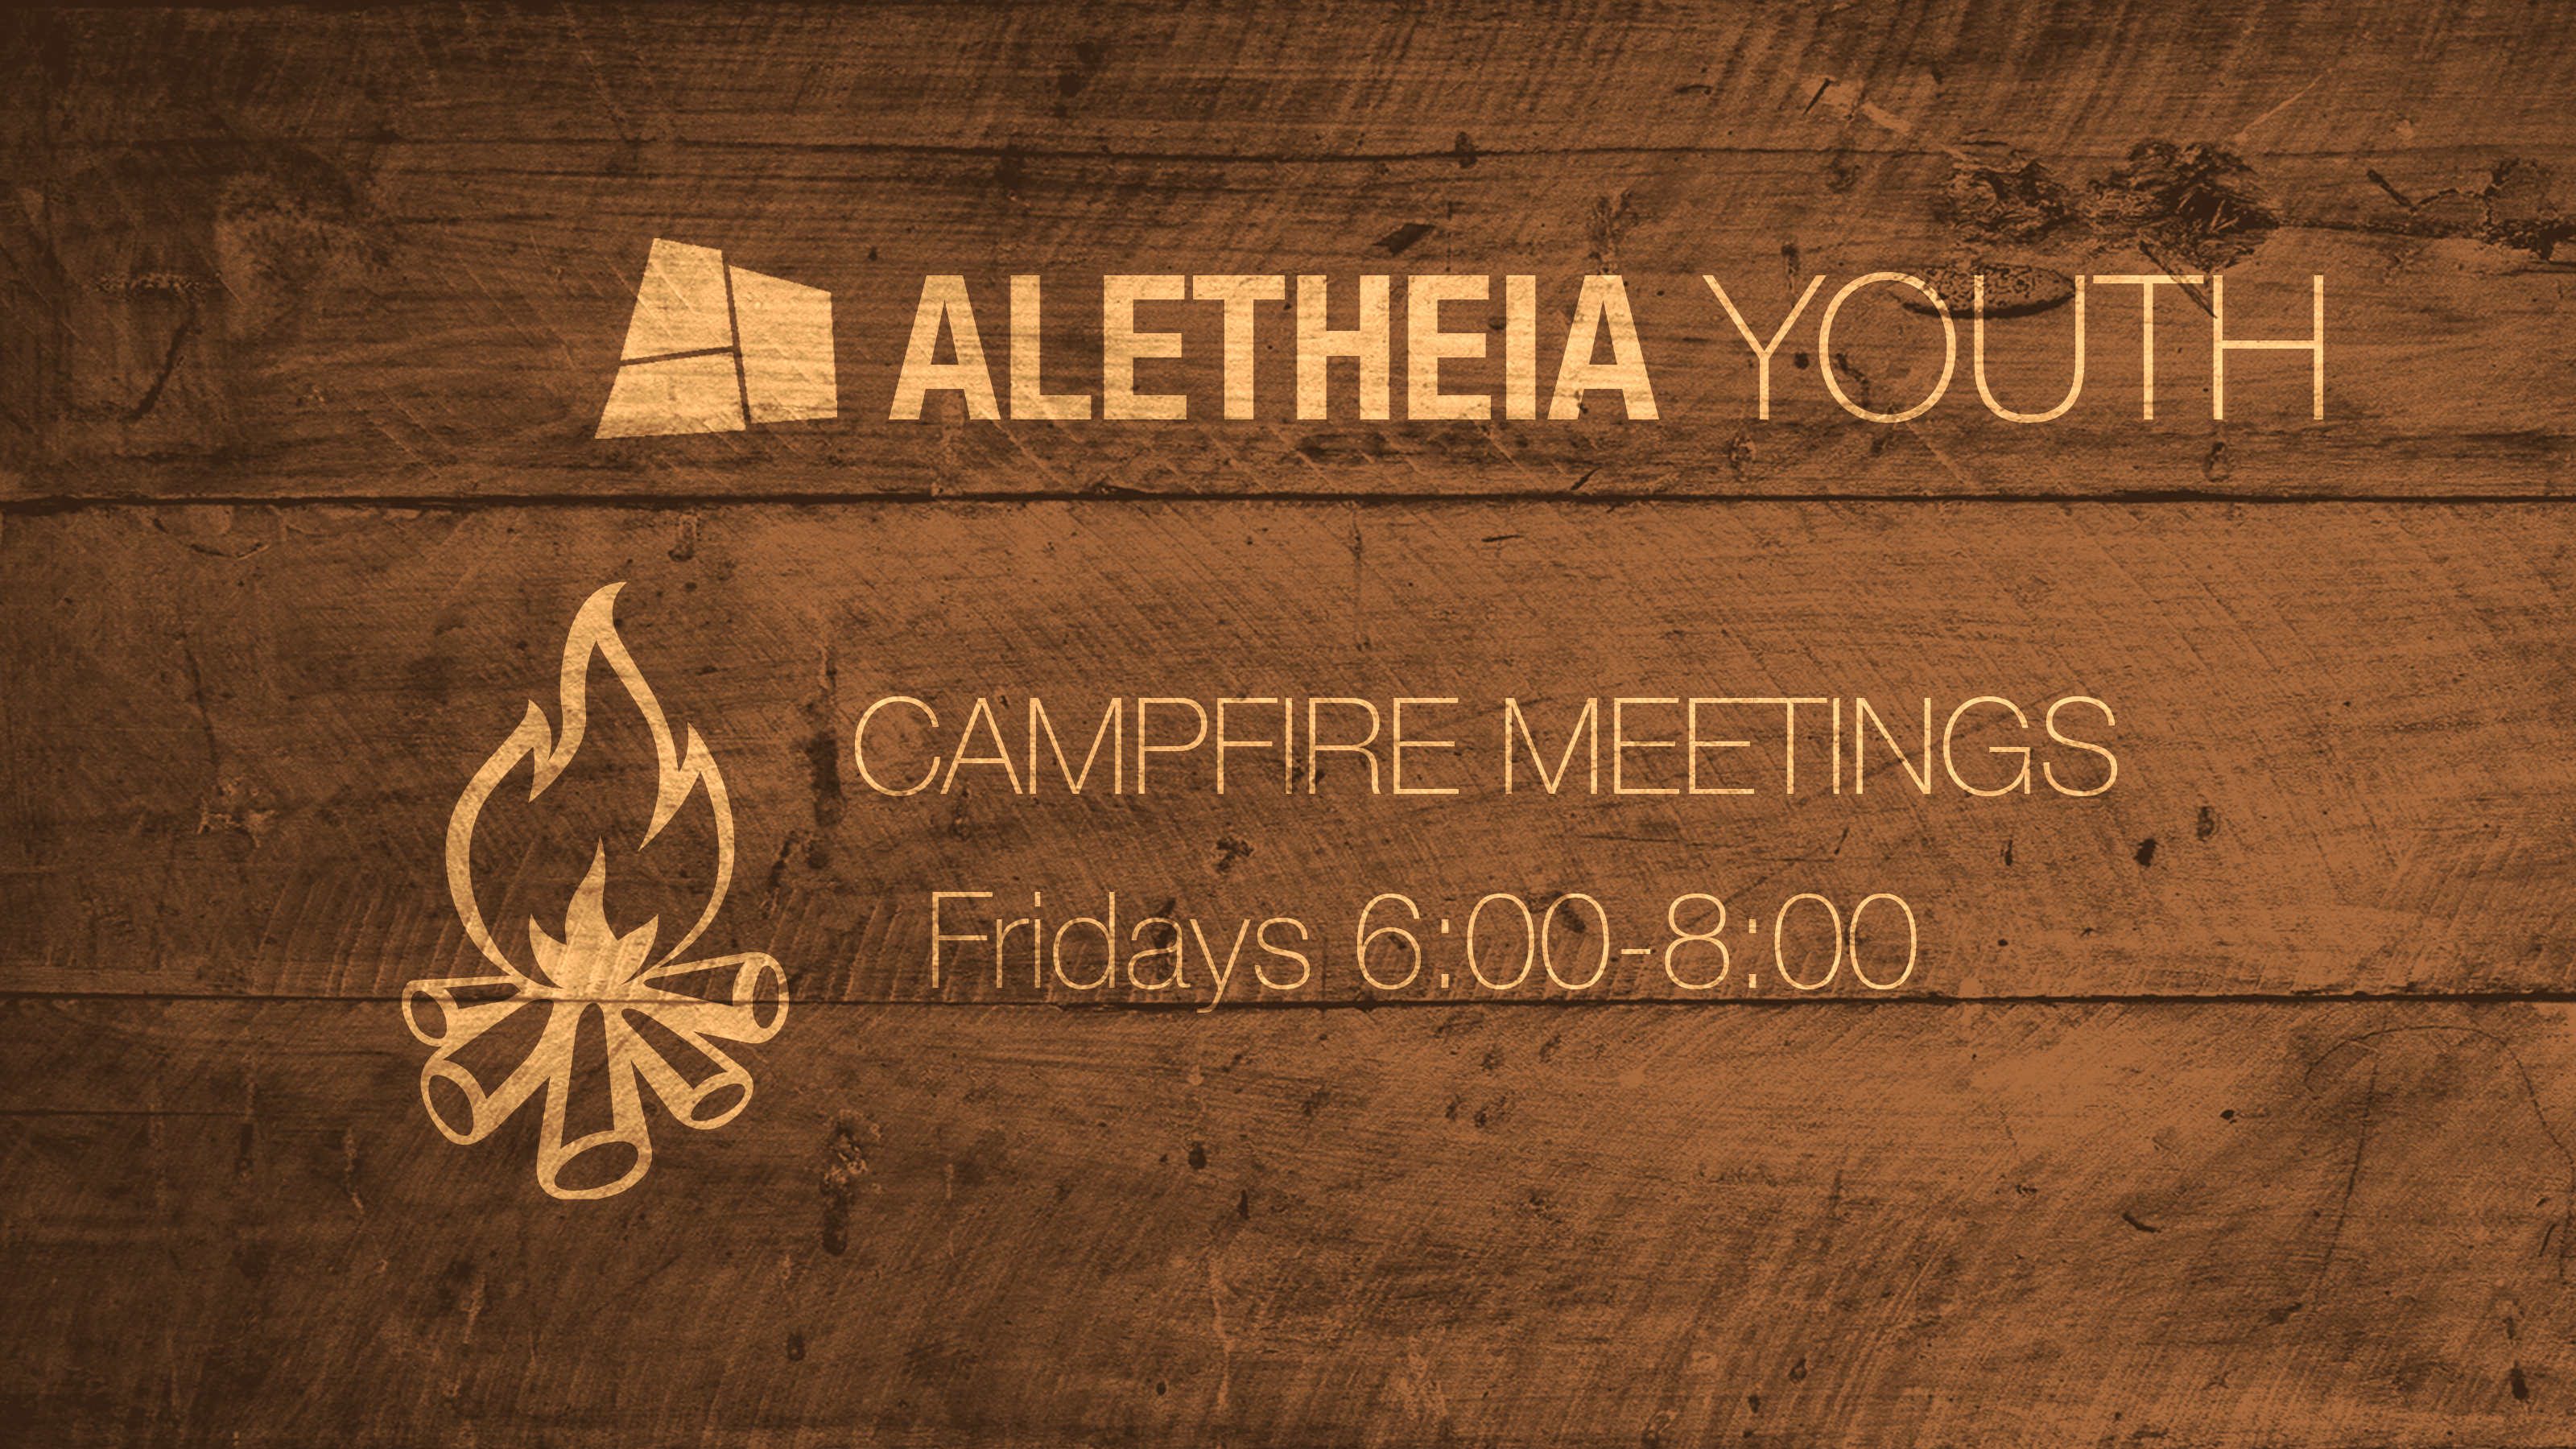 Aletheia Youth Fall Campfire Meetings 2020 image